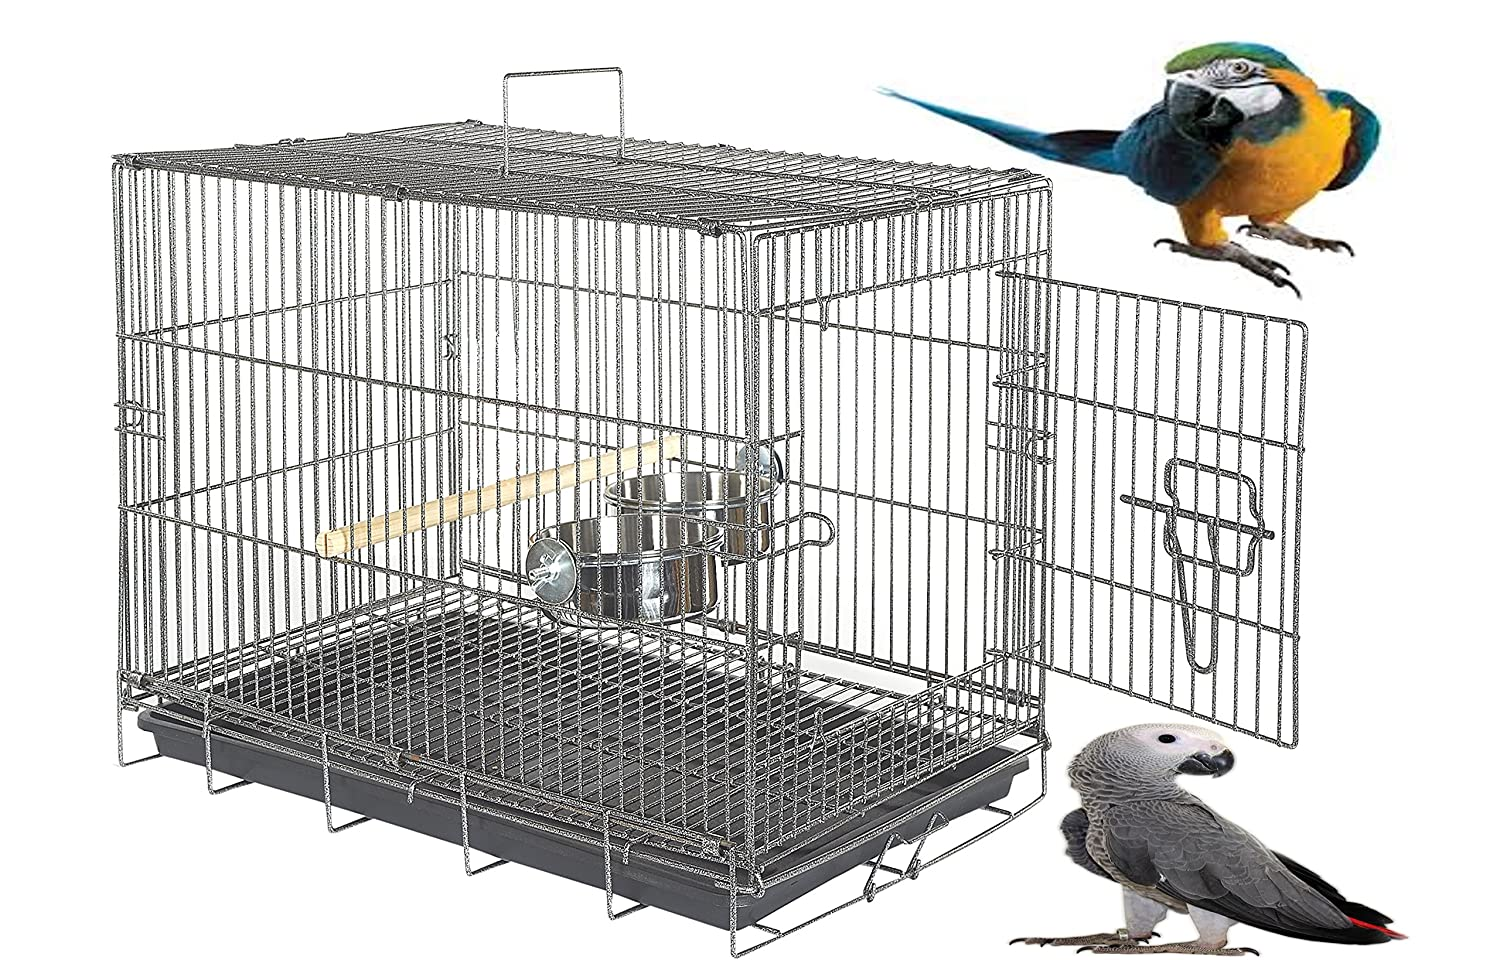 WUNDAPETS EXTRA LARGE MACAW AFRICAN GREY COCKATOO HEAVY DUTY LARGE PARROT TRAVEL CARRYING CAGE